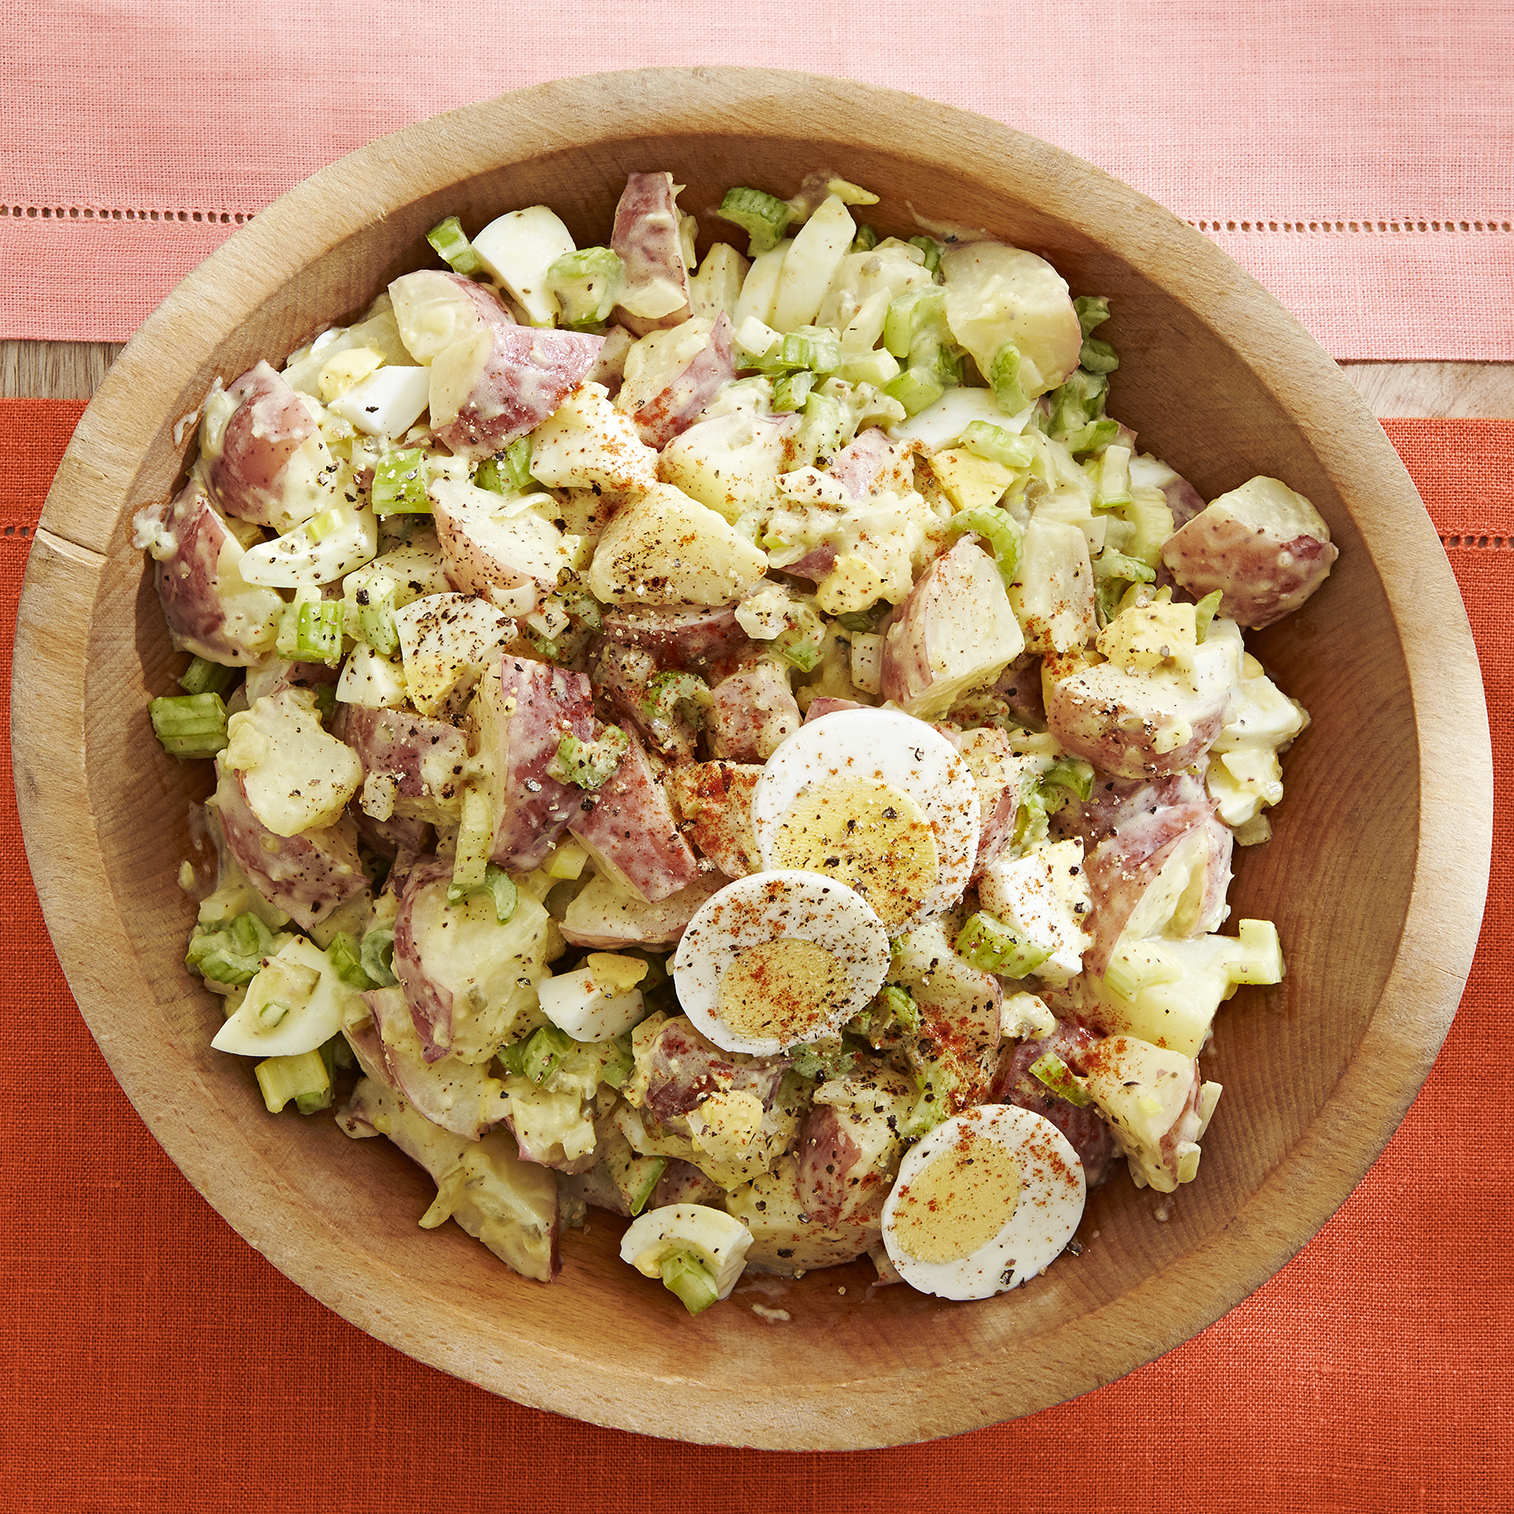 Old Fashioned Potato Salad recipe in a wooden bowl